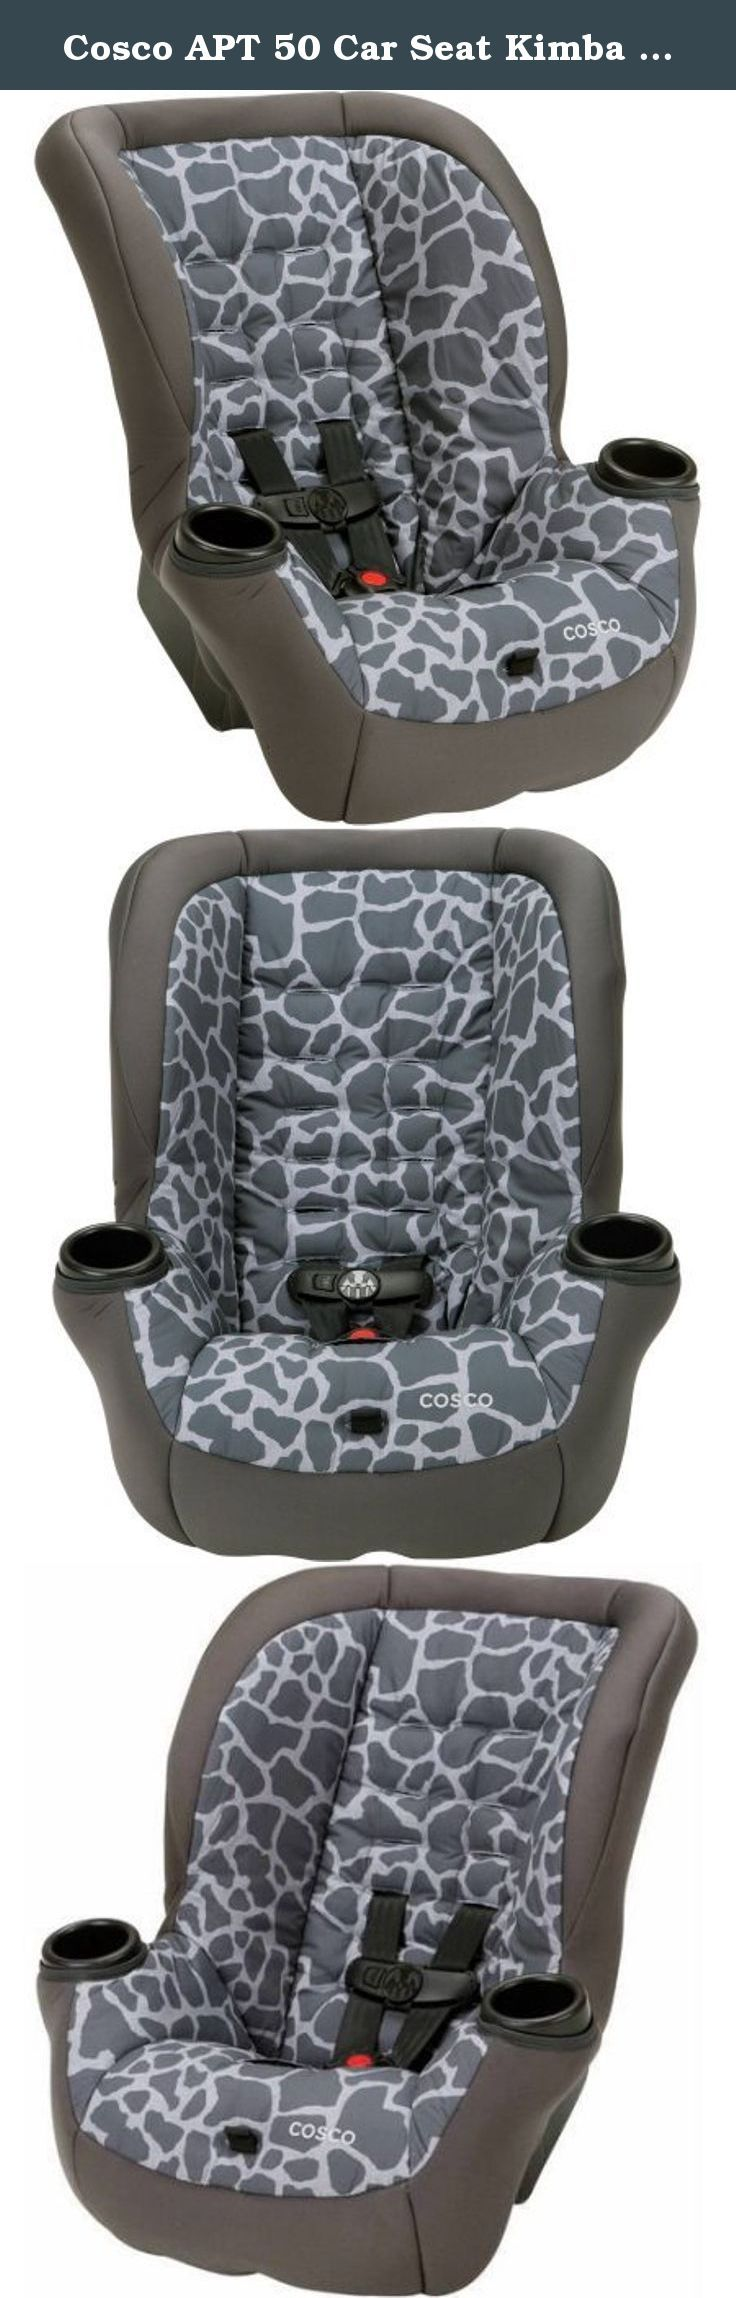 Cosco APT 50 Car Seat Kimba Giraffe. With the Cosco Apt 50 Convertible Car Seat, your kids will ride longer - all the way to 50 pounds. Rear-facing to 40 pounds and forward-facing to 50, the Apt 50 keeps them safer during every stage with Side Impact Protection. Theres also six harness heights and three buckle locations for the best fit as they grow. With kids in the car, messes happen. Now, thanks to the easy-to-clean car seat pad, theres no need to stress. The pad comes in a wide range…